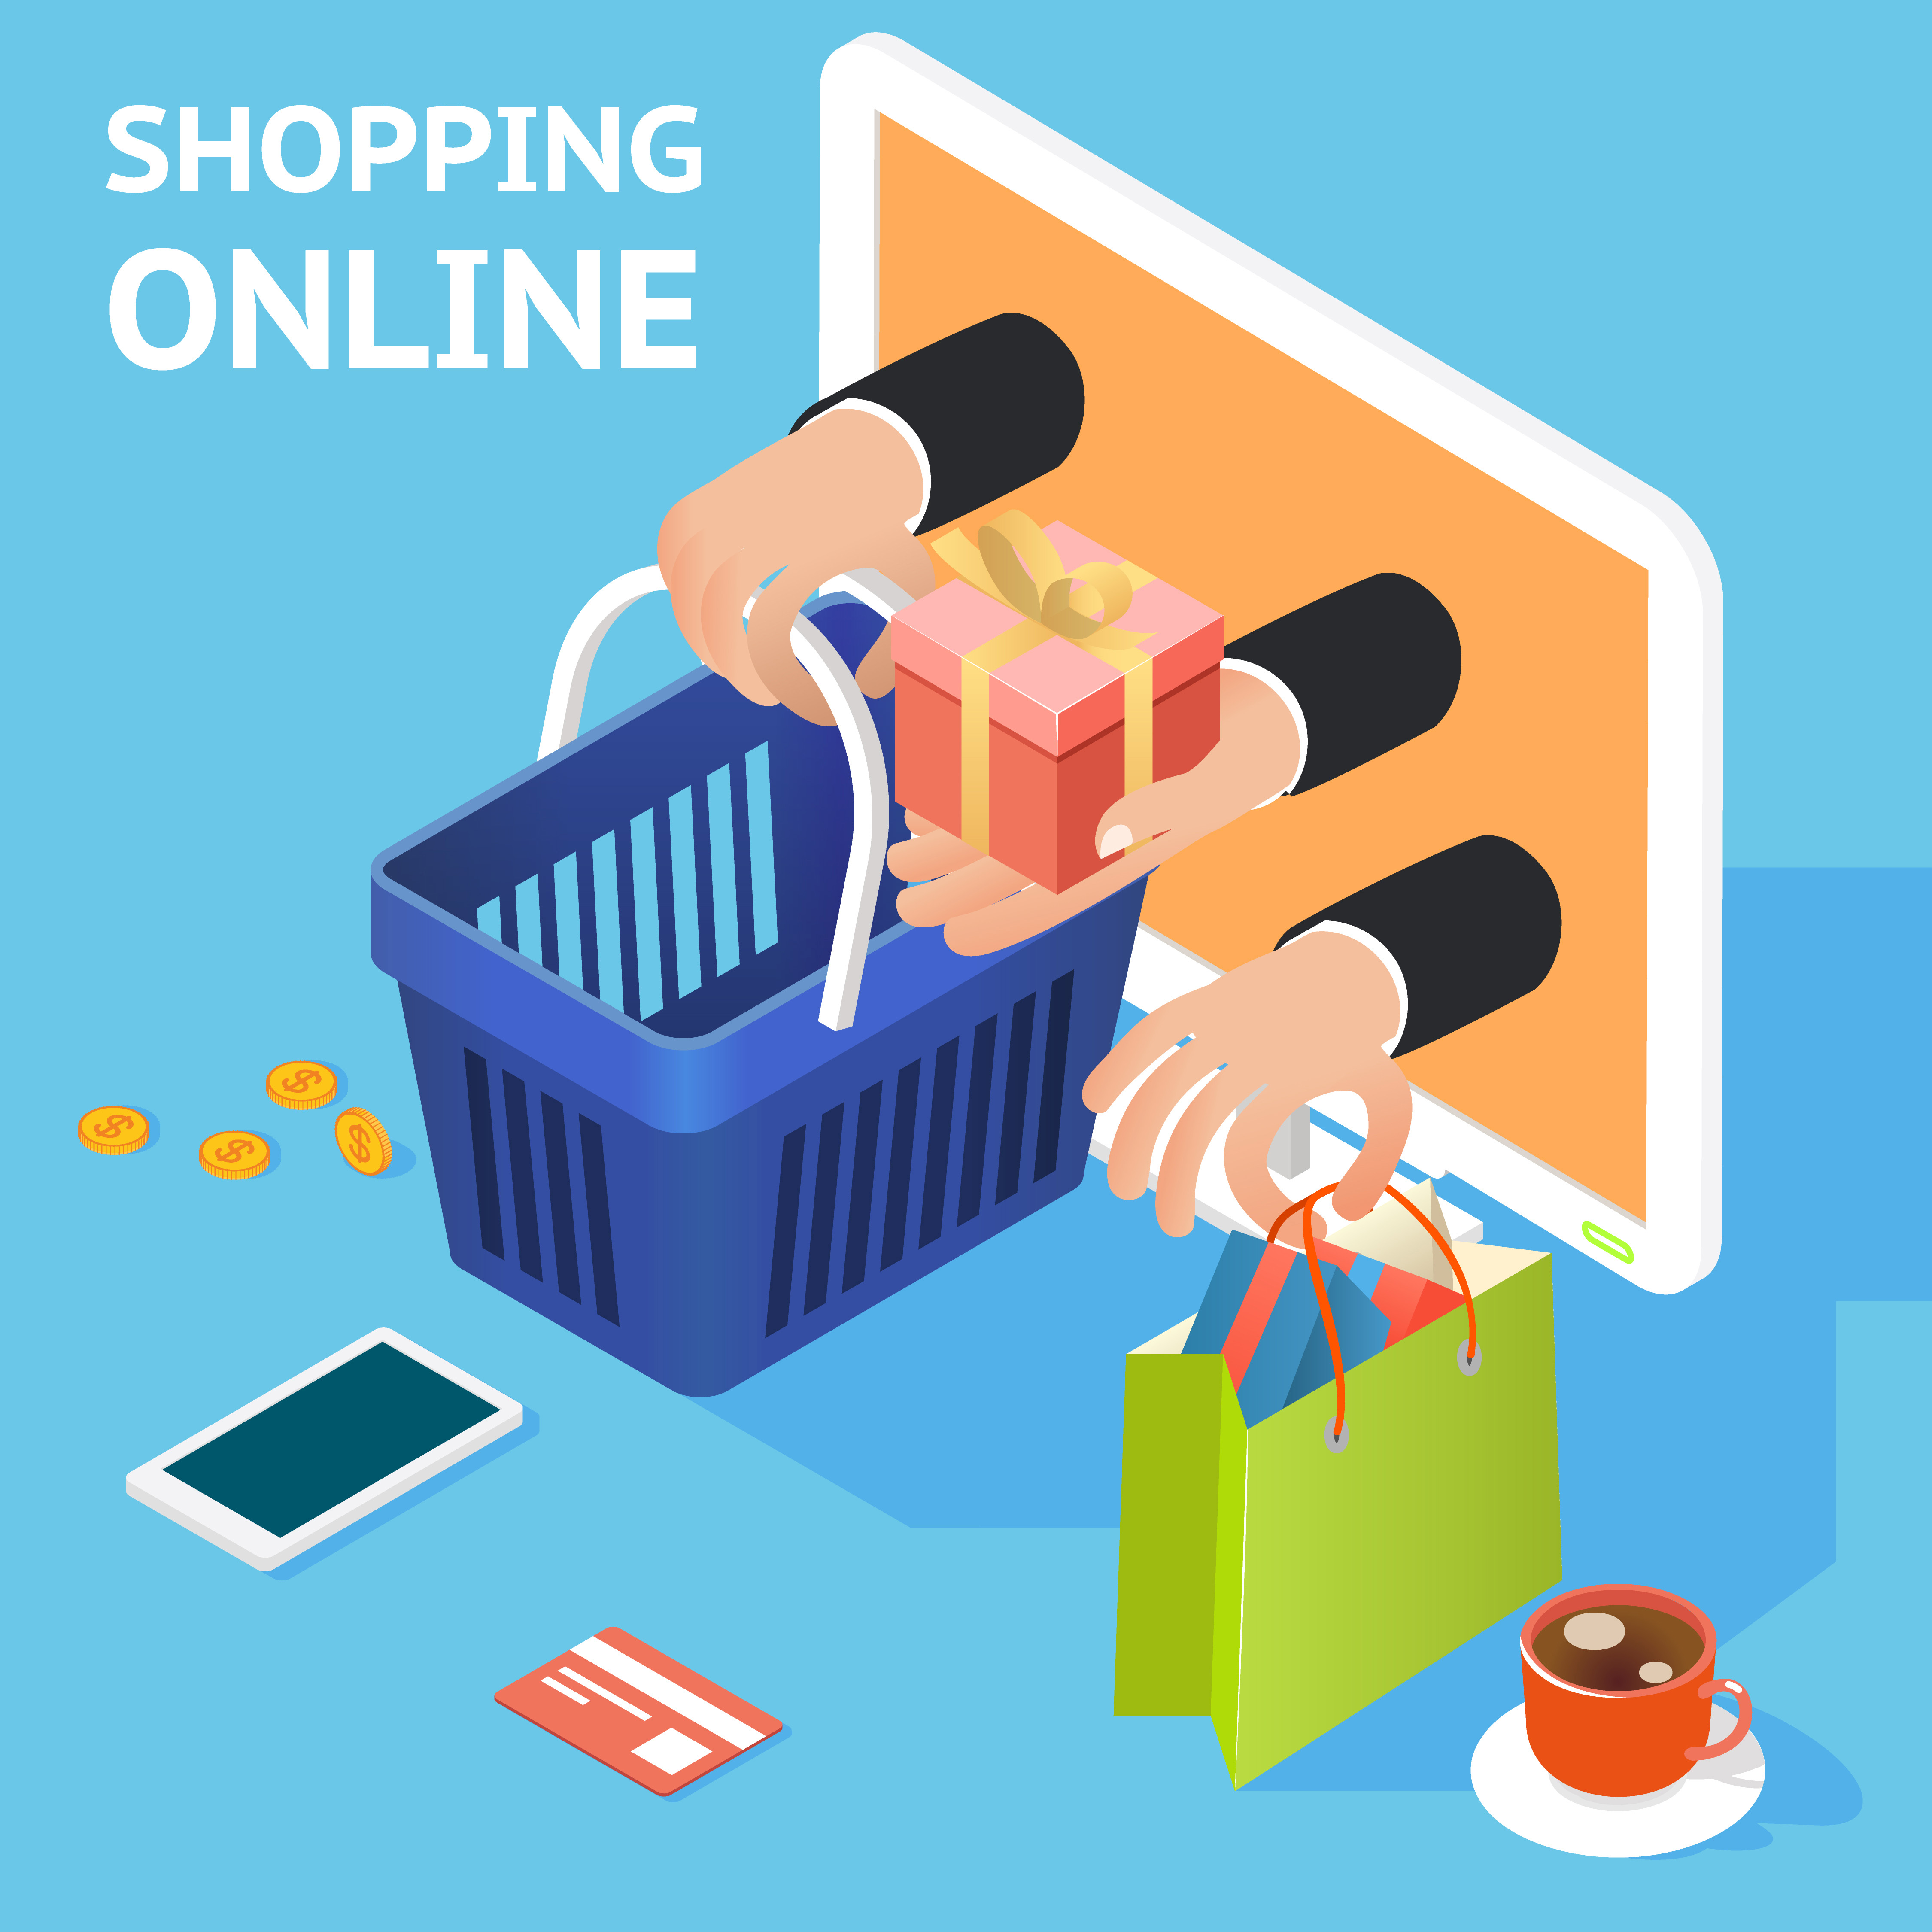 research retailing and online shopping